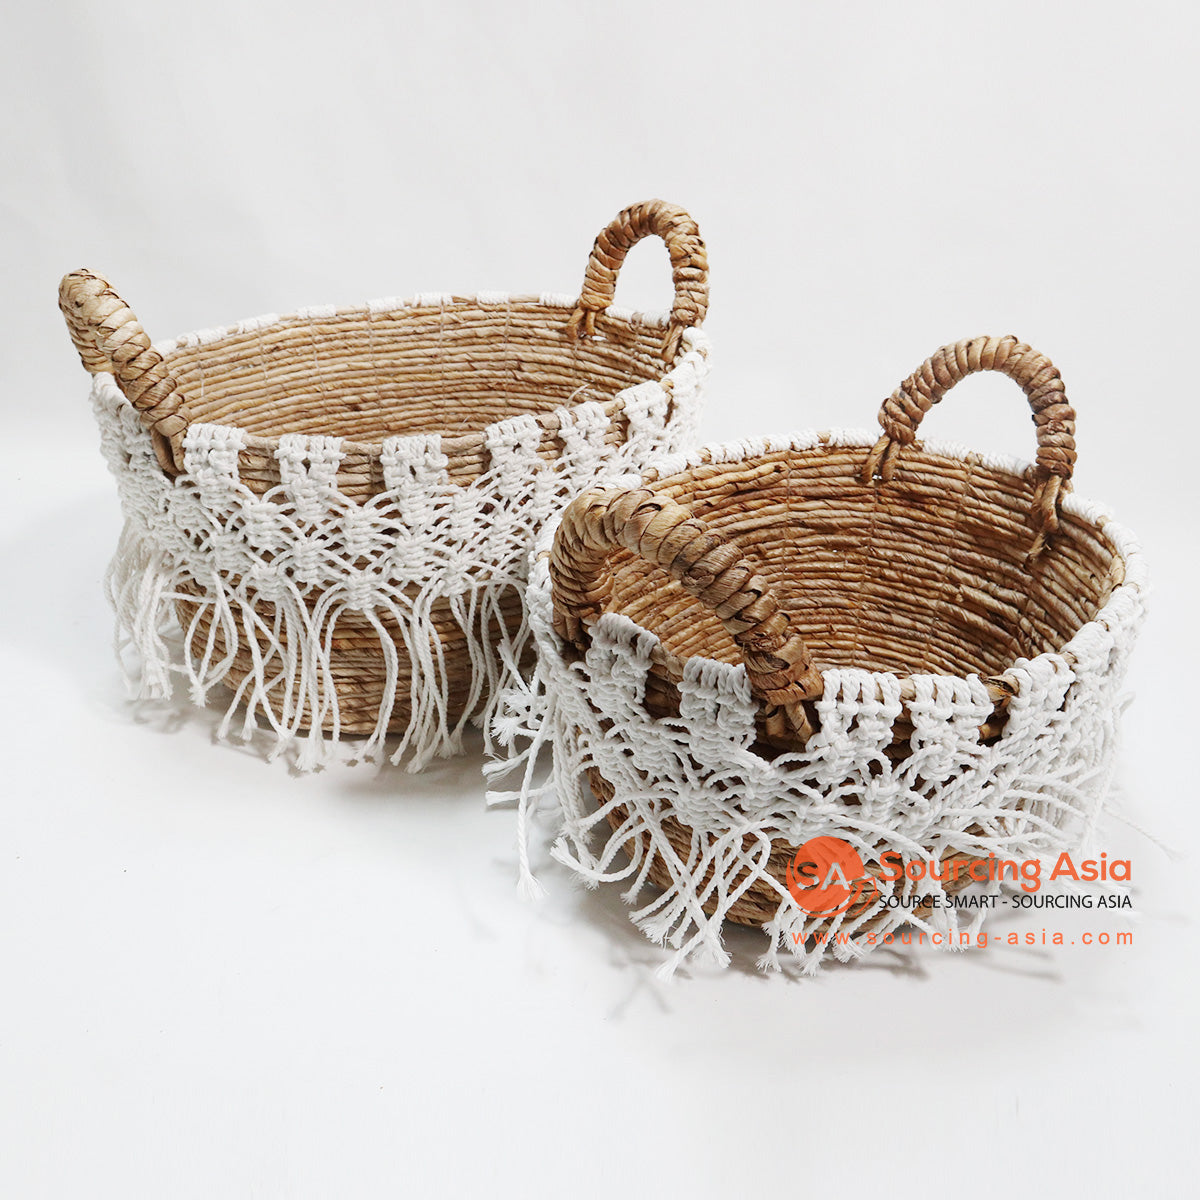 HBSC075 SET OF 2 MENDONG AND MACRAME BASKETS